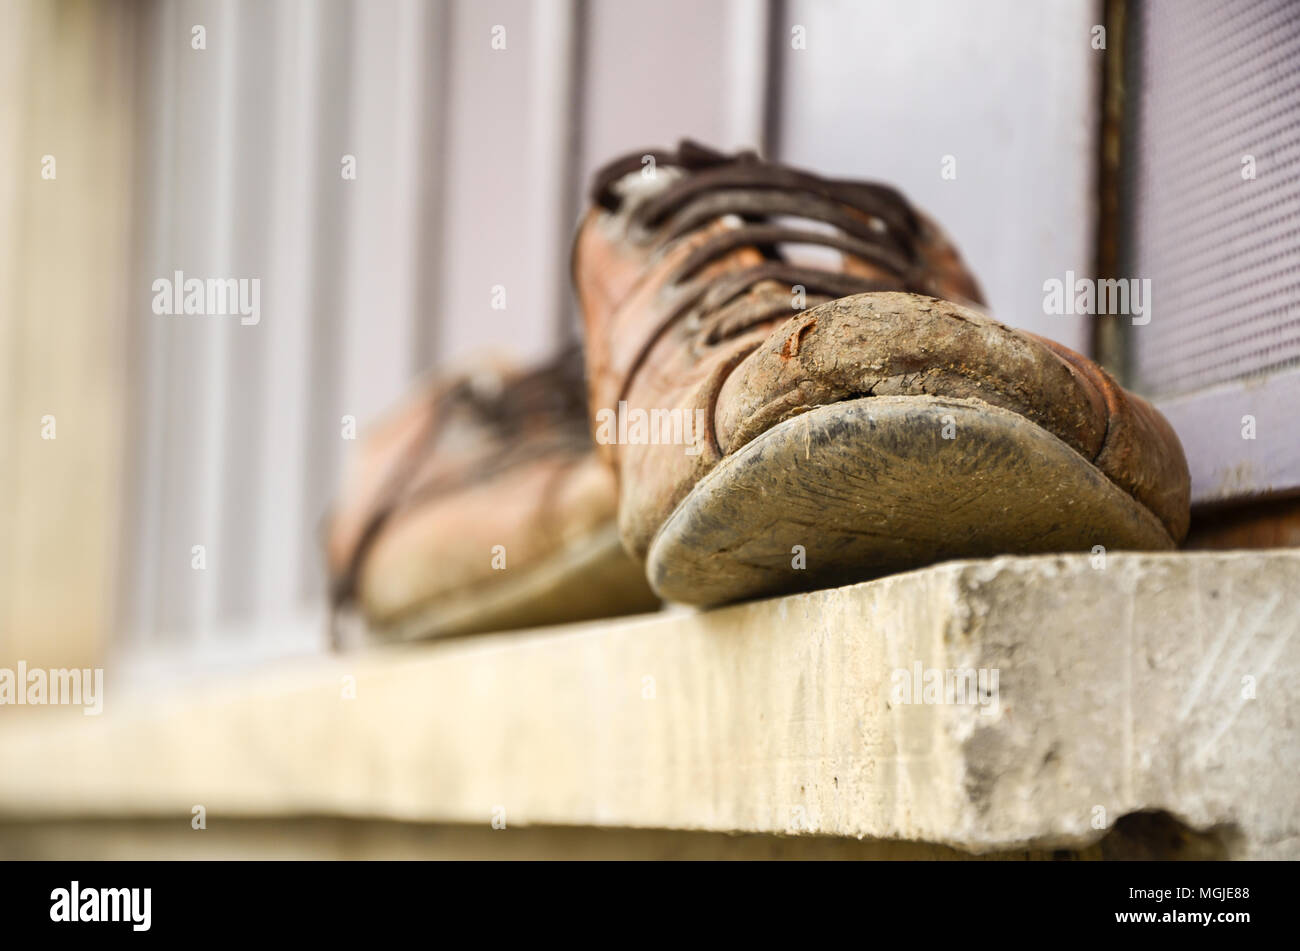 Muddy and old shoes in front of the window, worker's shoes, labor, soreness,selective focus - Stock Image